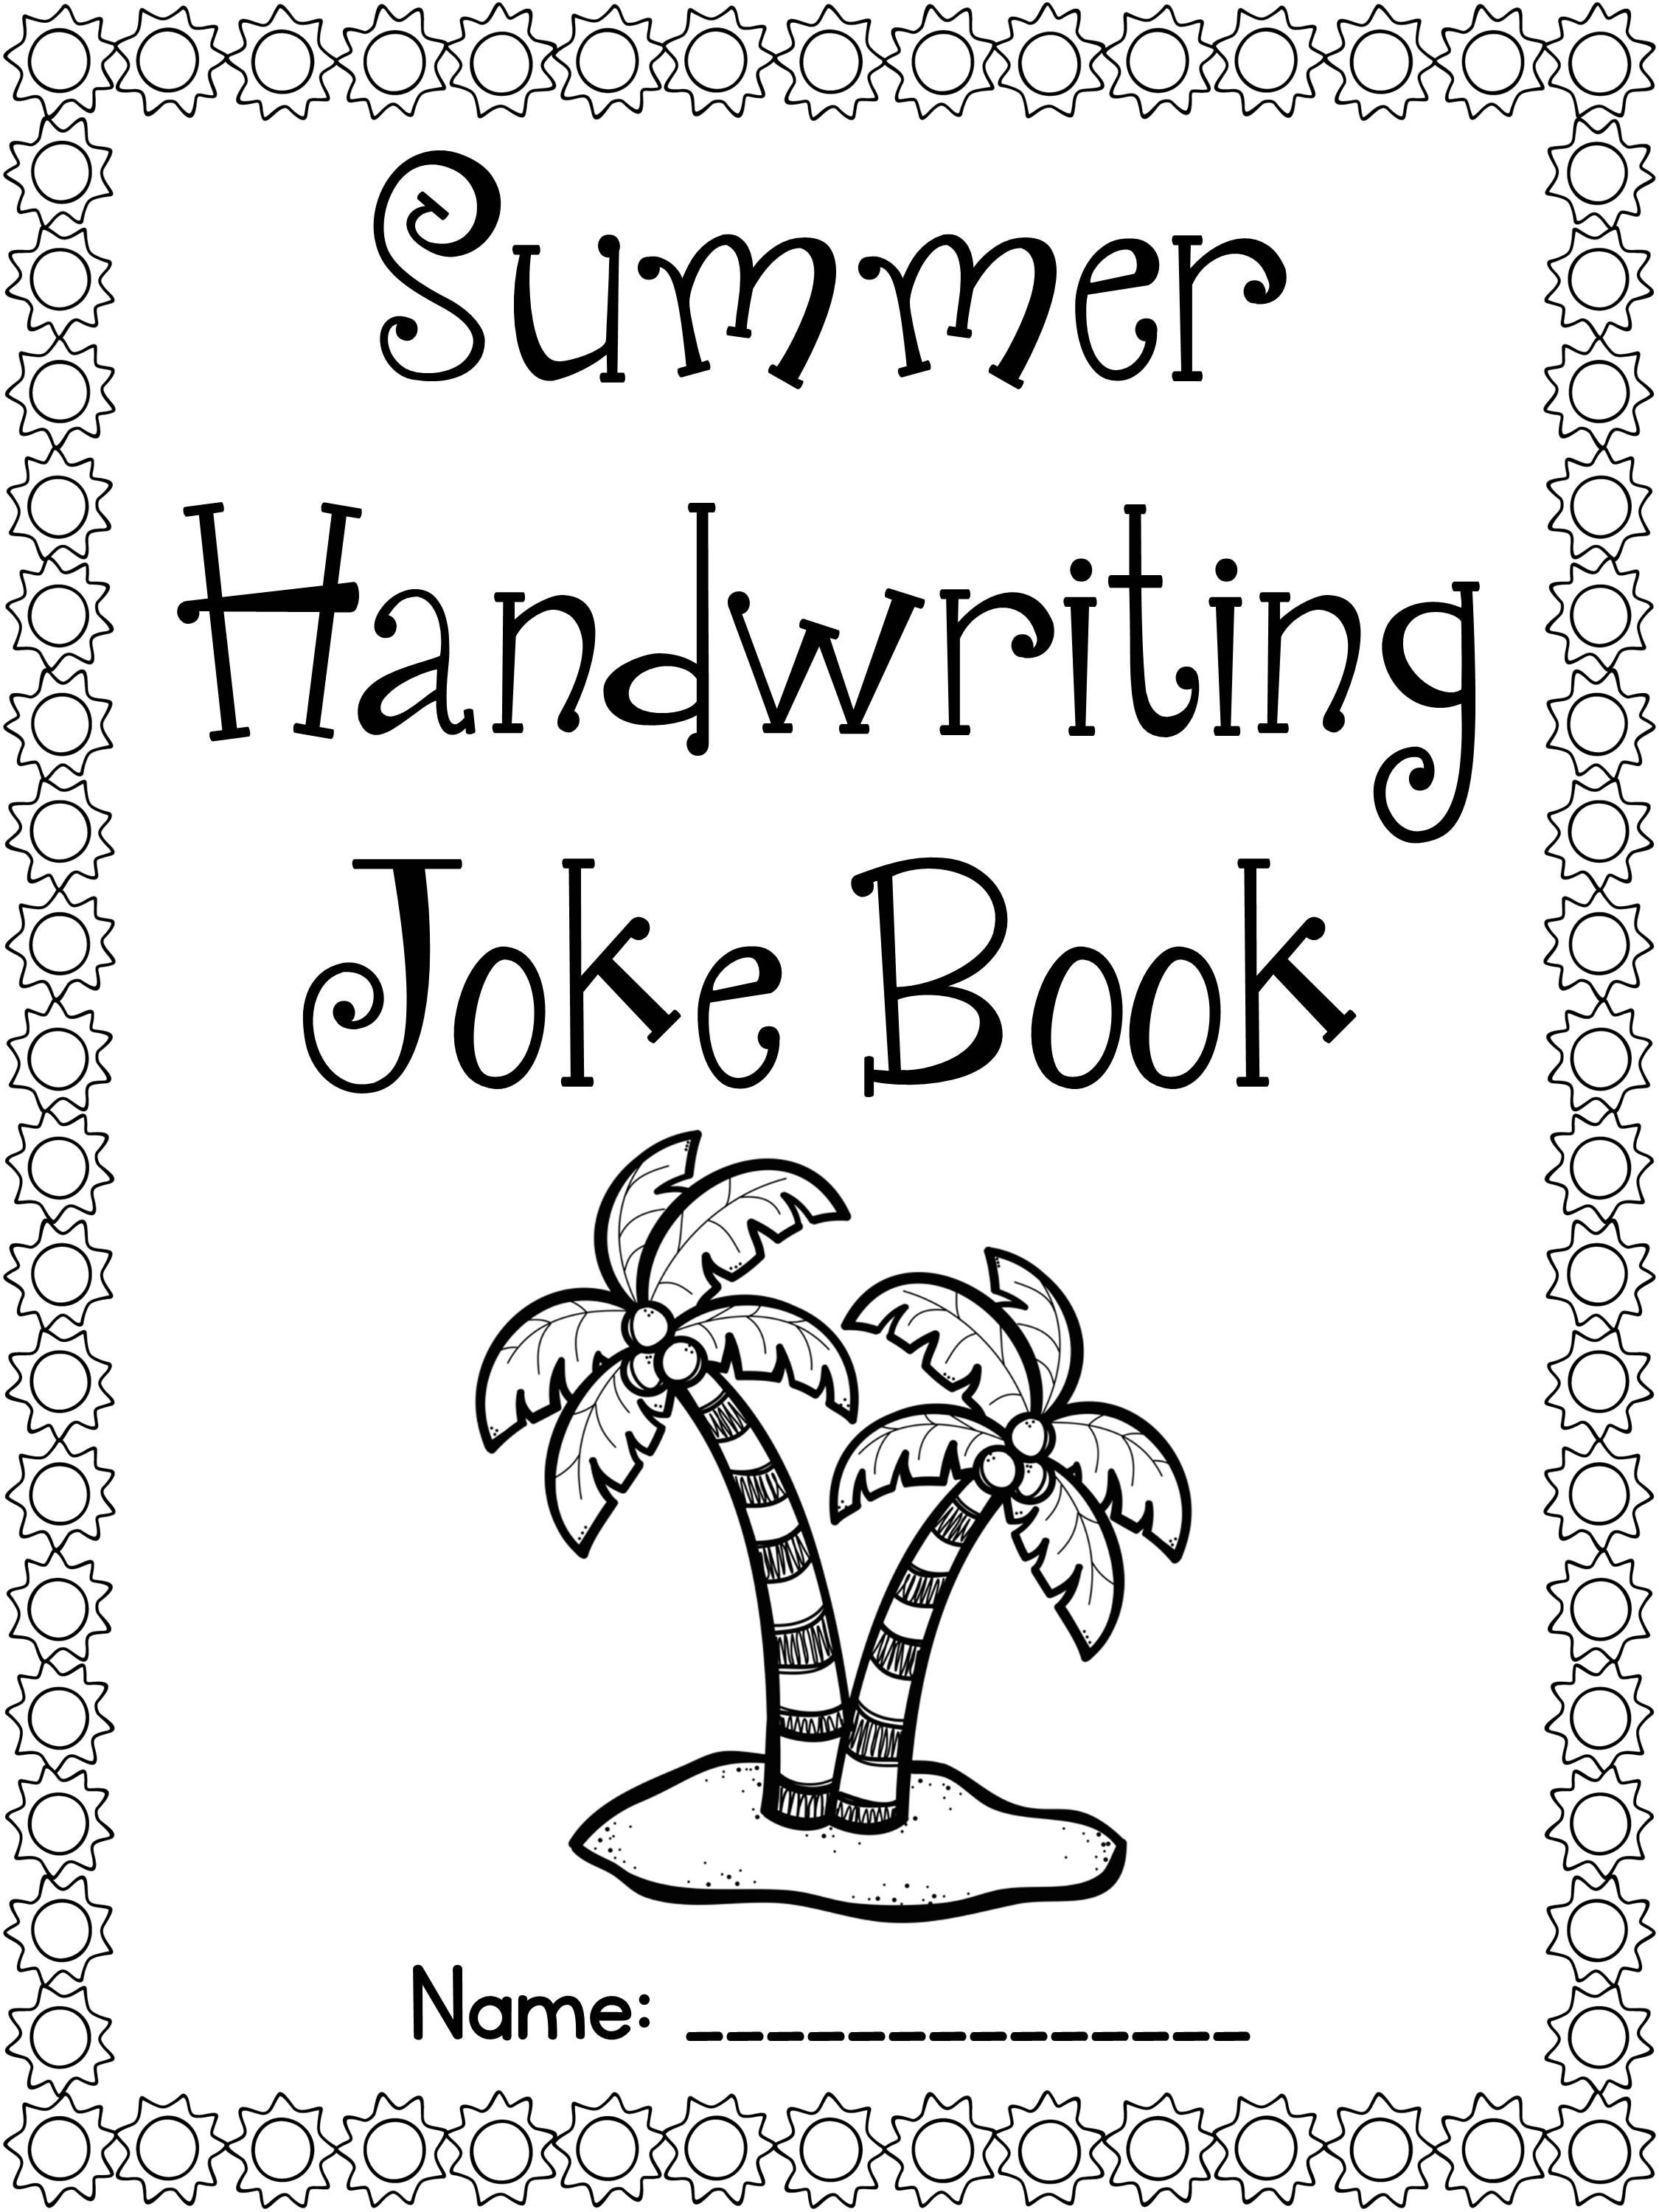 FREE Summer Handwriting Joke Book- cursive & print